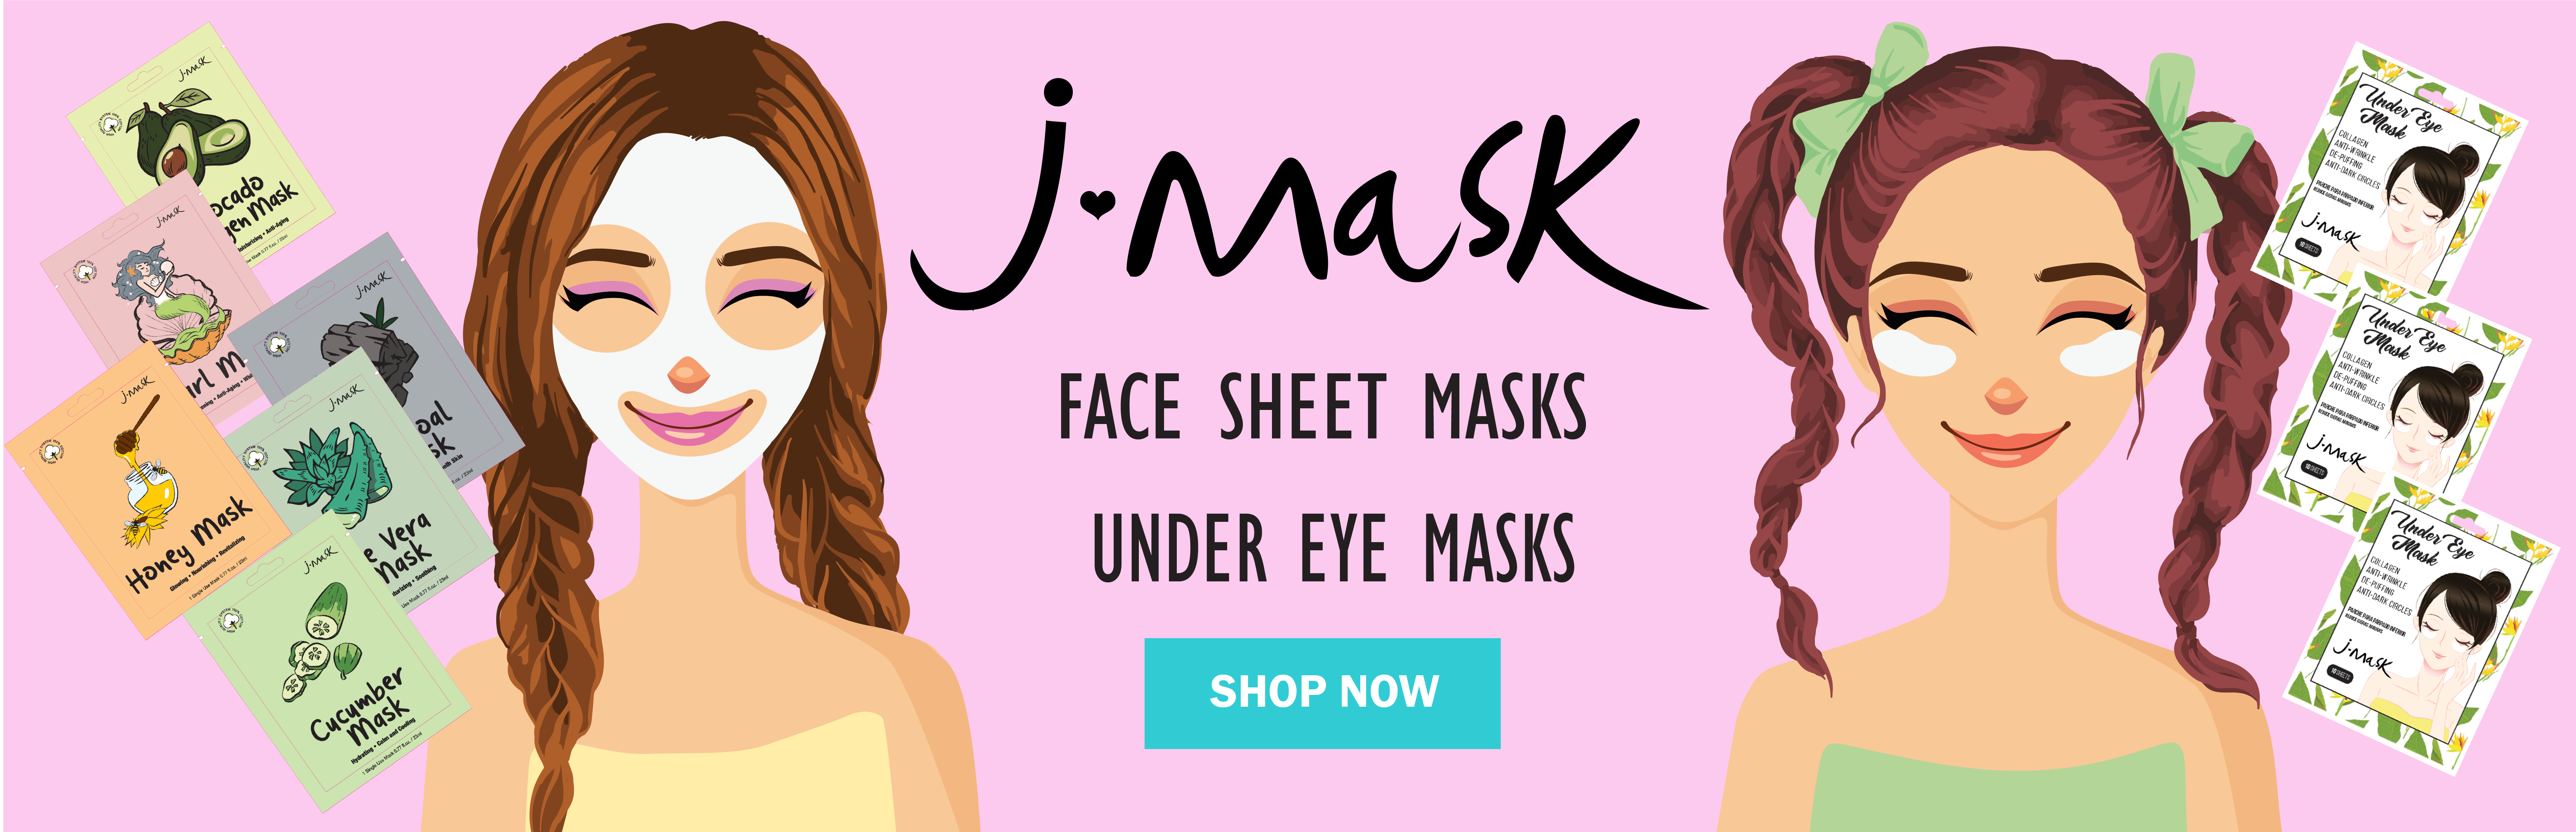 Face and Under Eye Mask